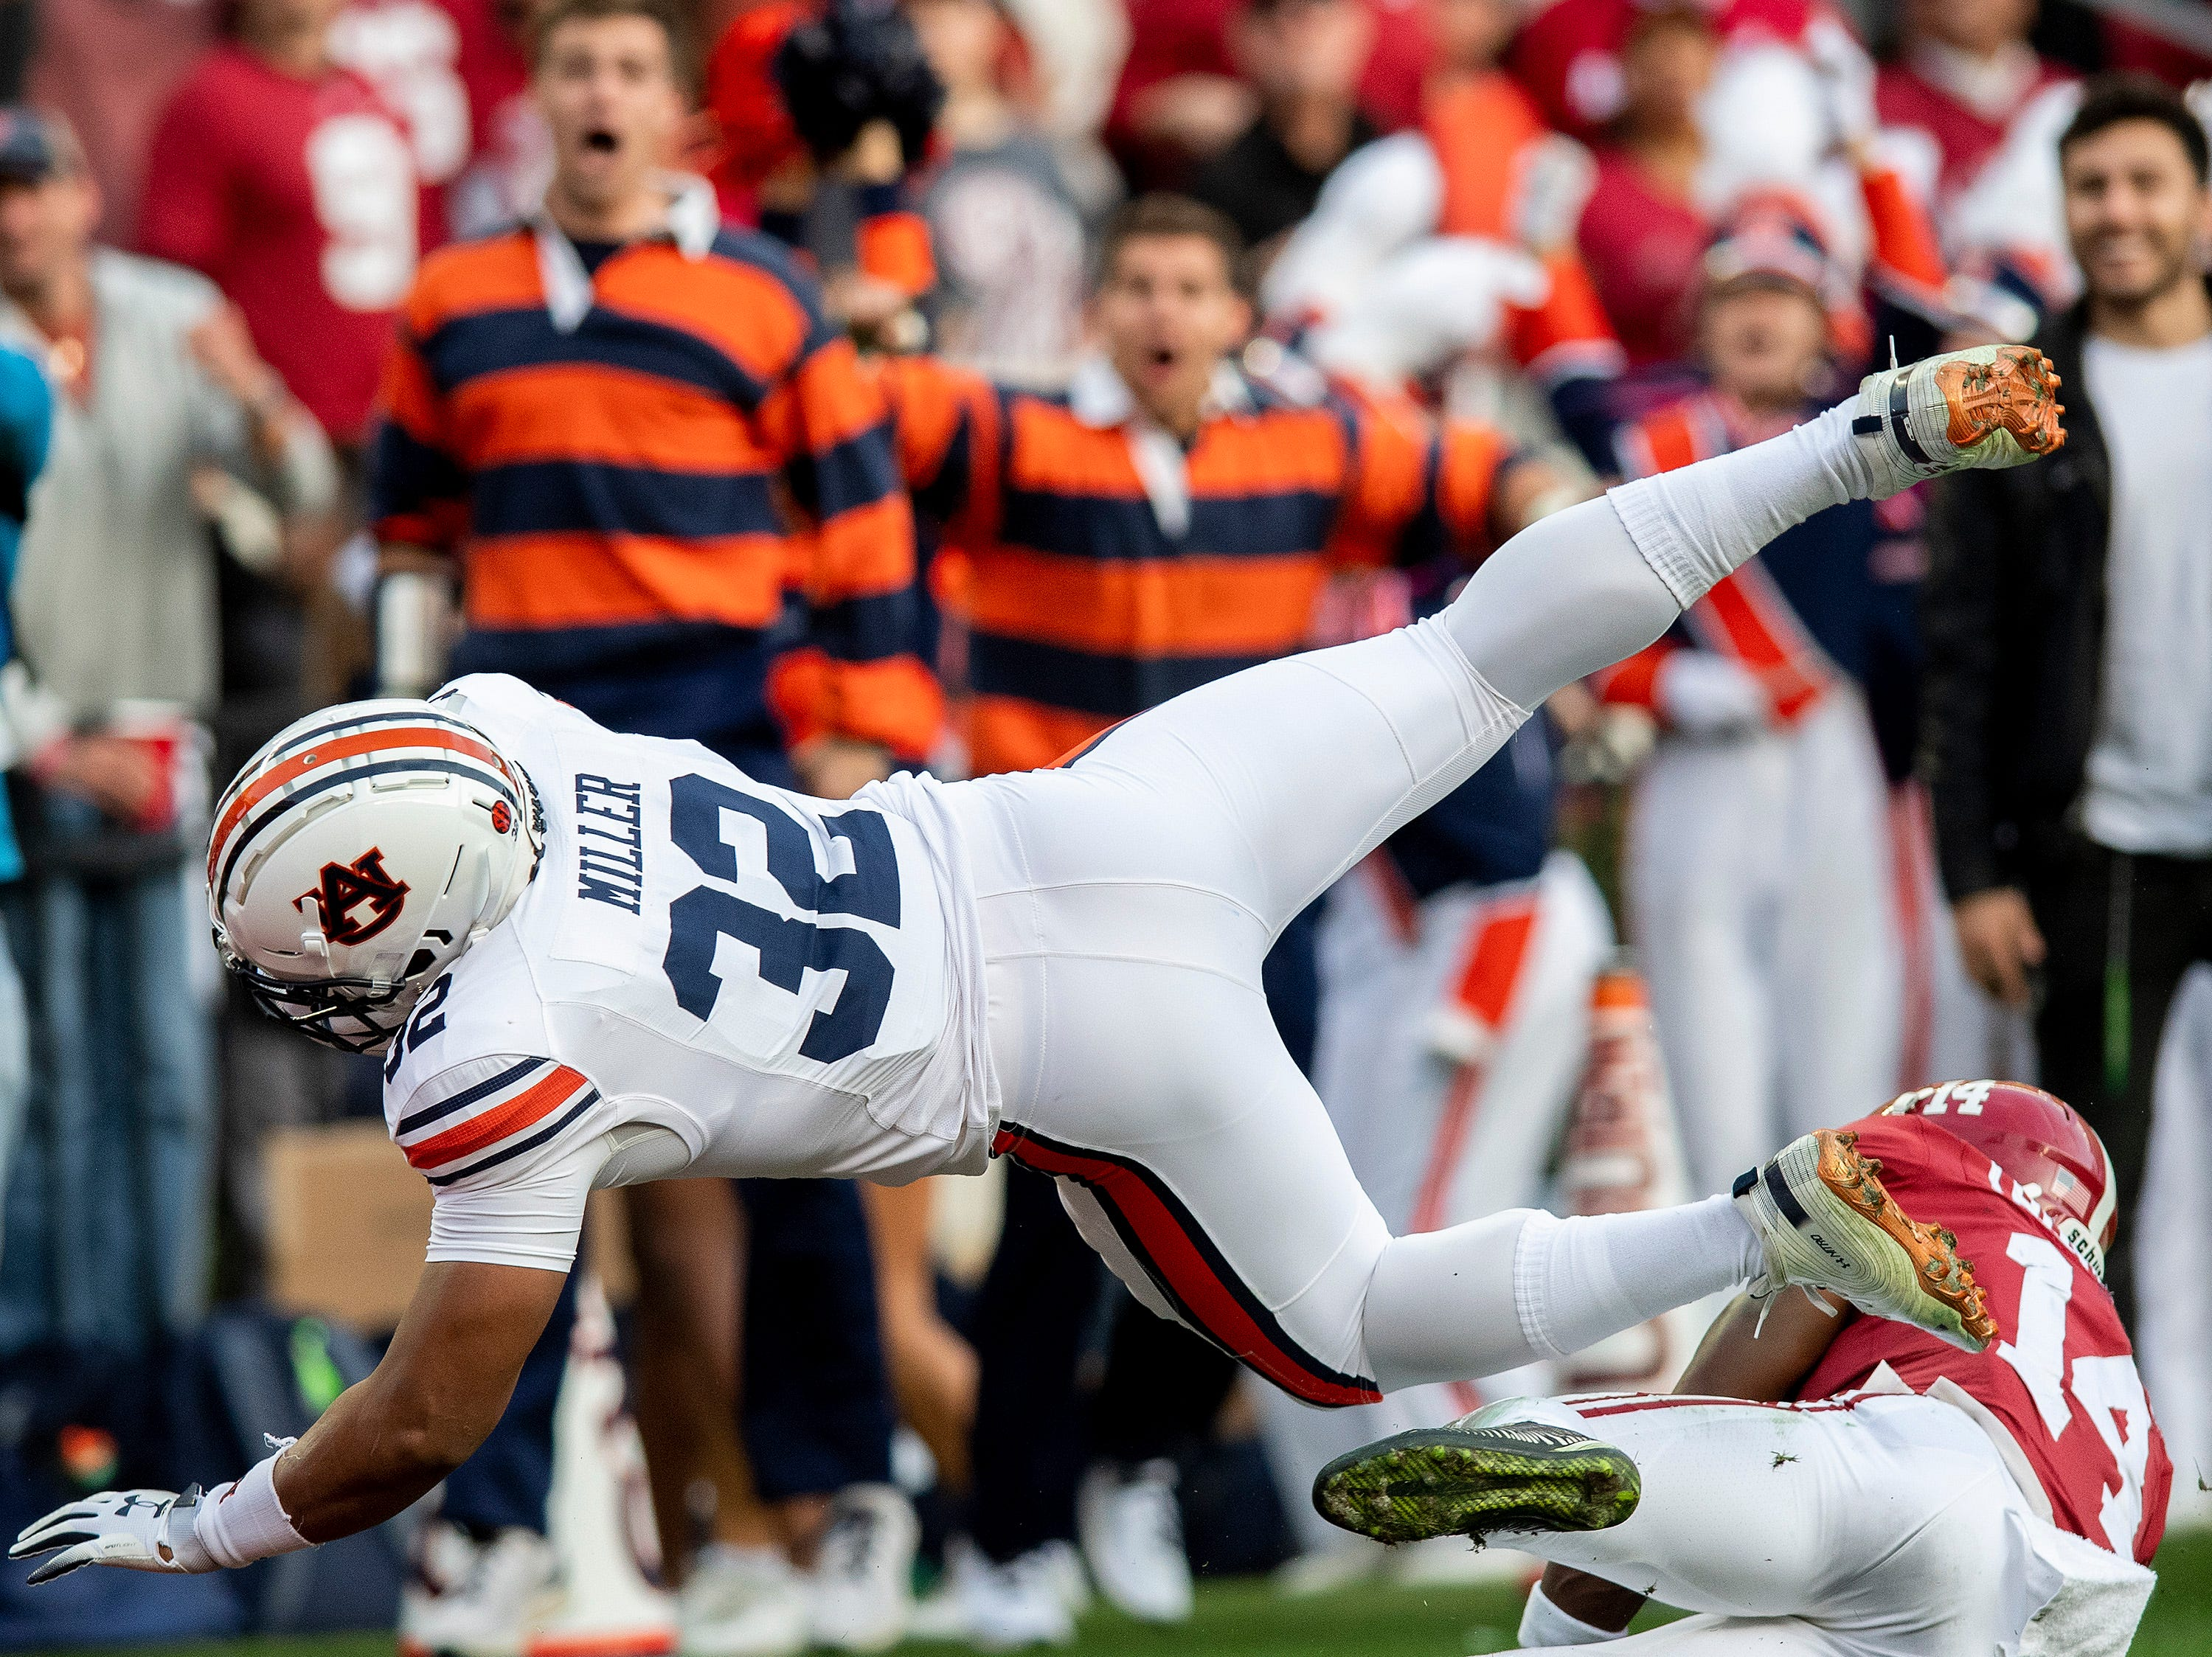 Auburn running back Malik Miller (32) dives ion for a touchdown against Alabama defensive back Deionte Thompson (14) in first half action during the Iron Bowl at Bryant-Denny Stadium in Tuscaloosa, Ala., on Saturday November 24, 2018.